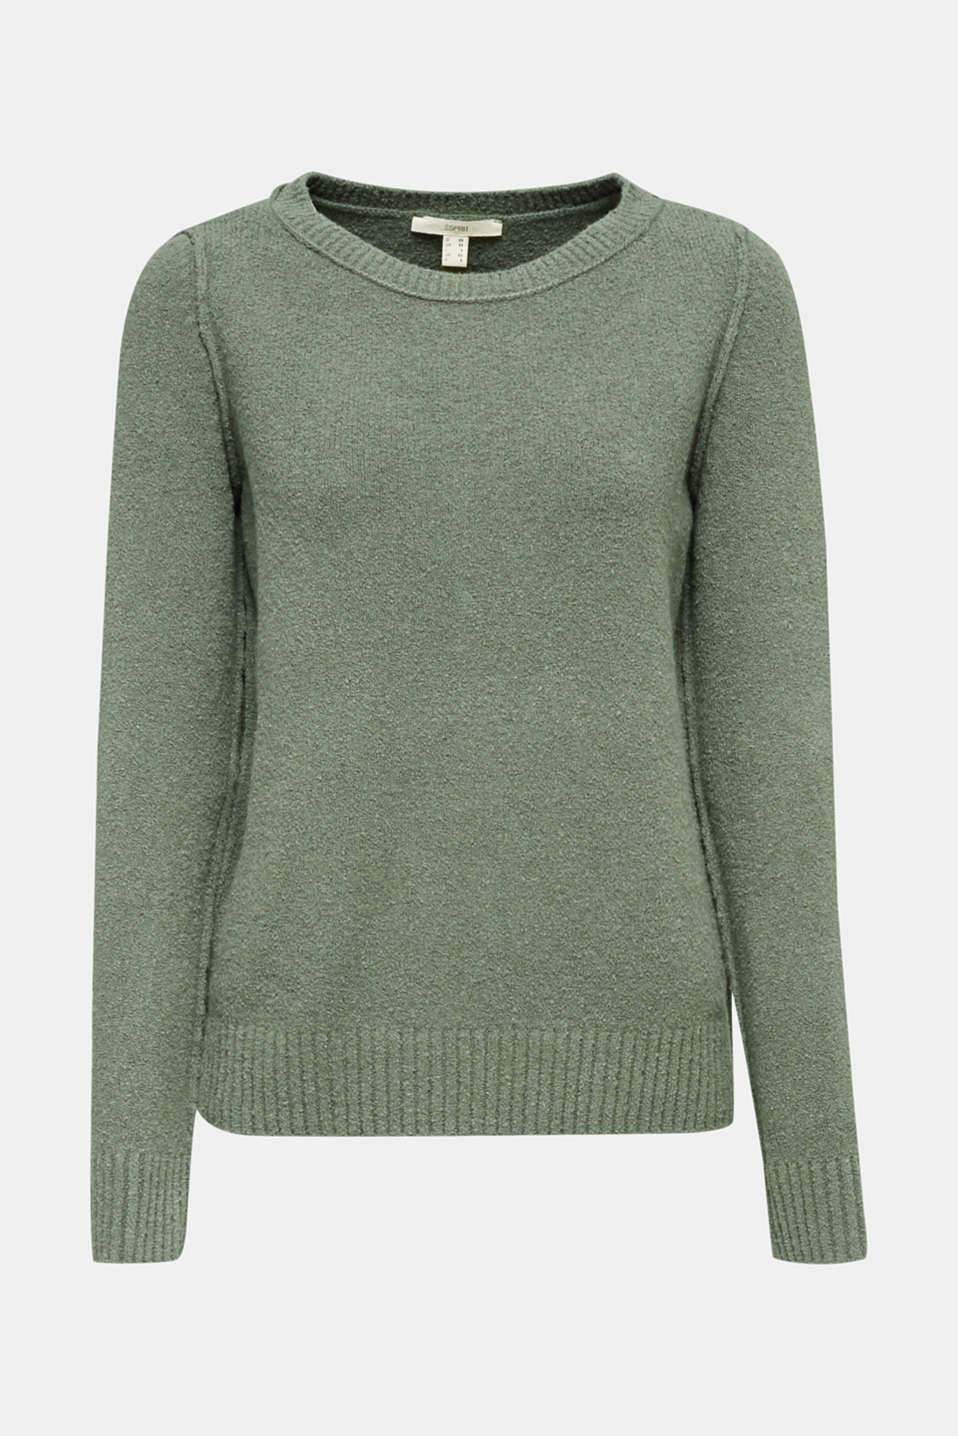 Comfy and stretchy bouclé jumper, KHAKI GREEN, detail image number 7